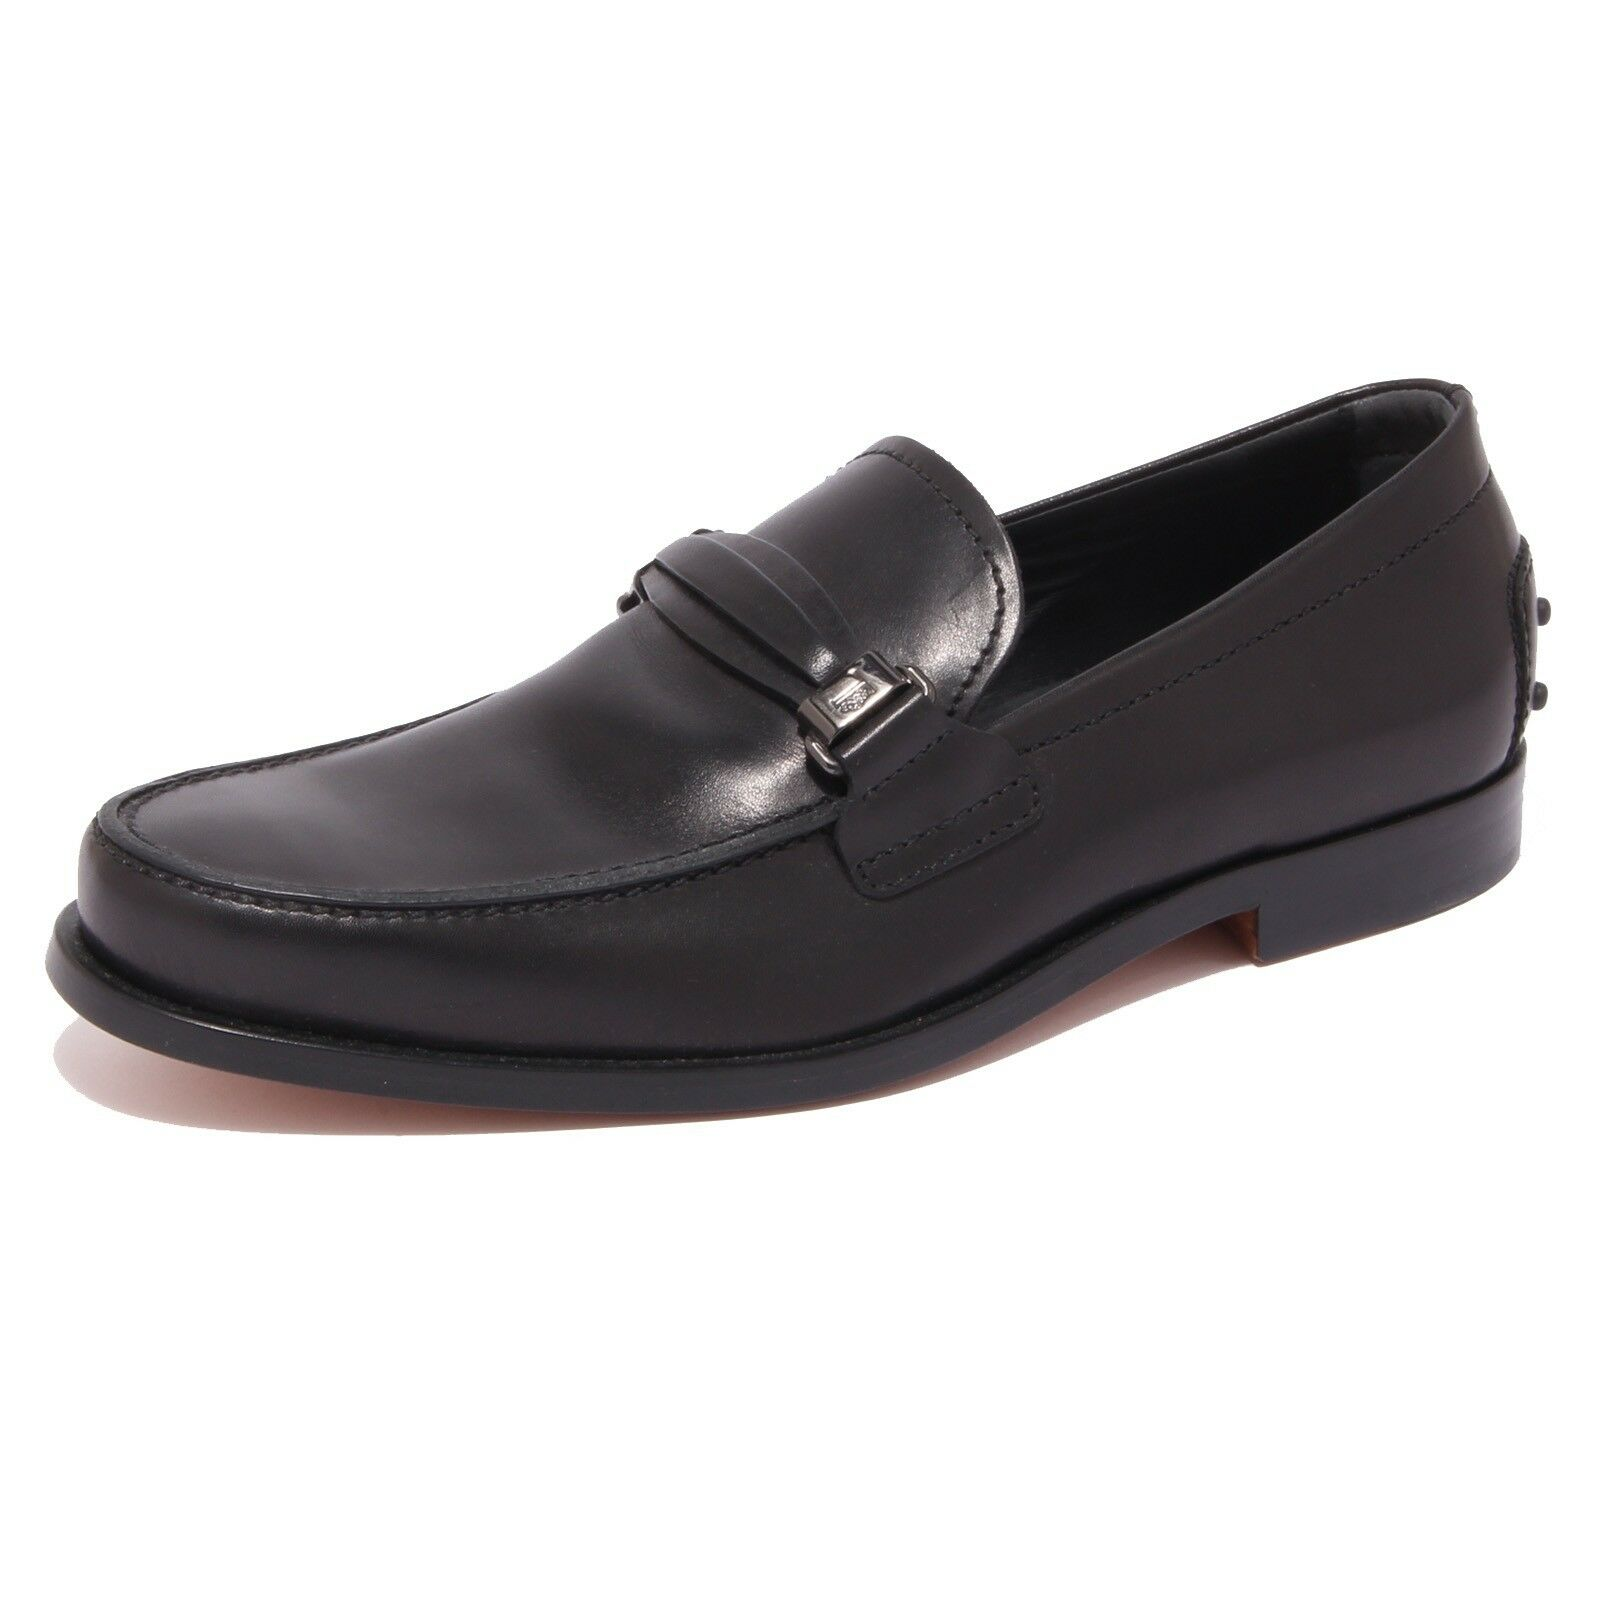 85946 mocassino TOD'S scarpa BOSTON MORSETTO SELLA LEGGERO scarpa TOD'S uomo loafer shoes men f4517a